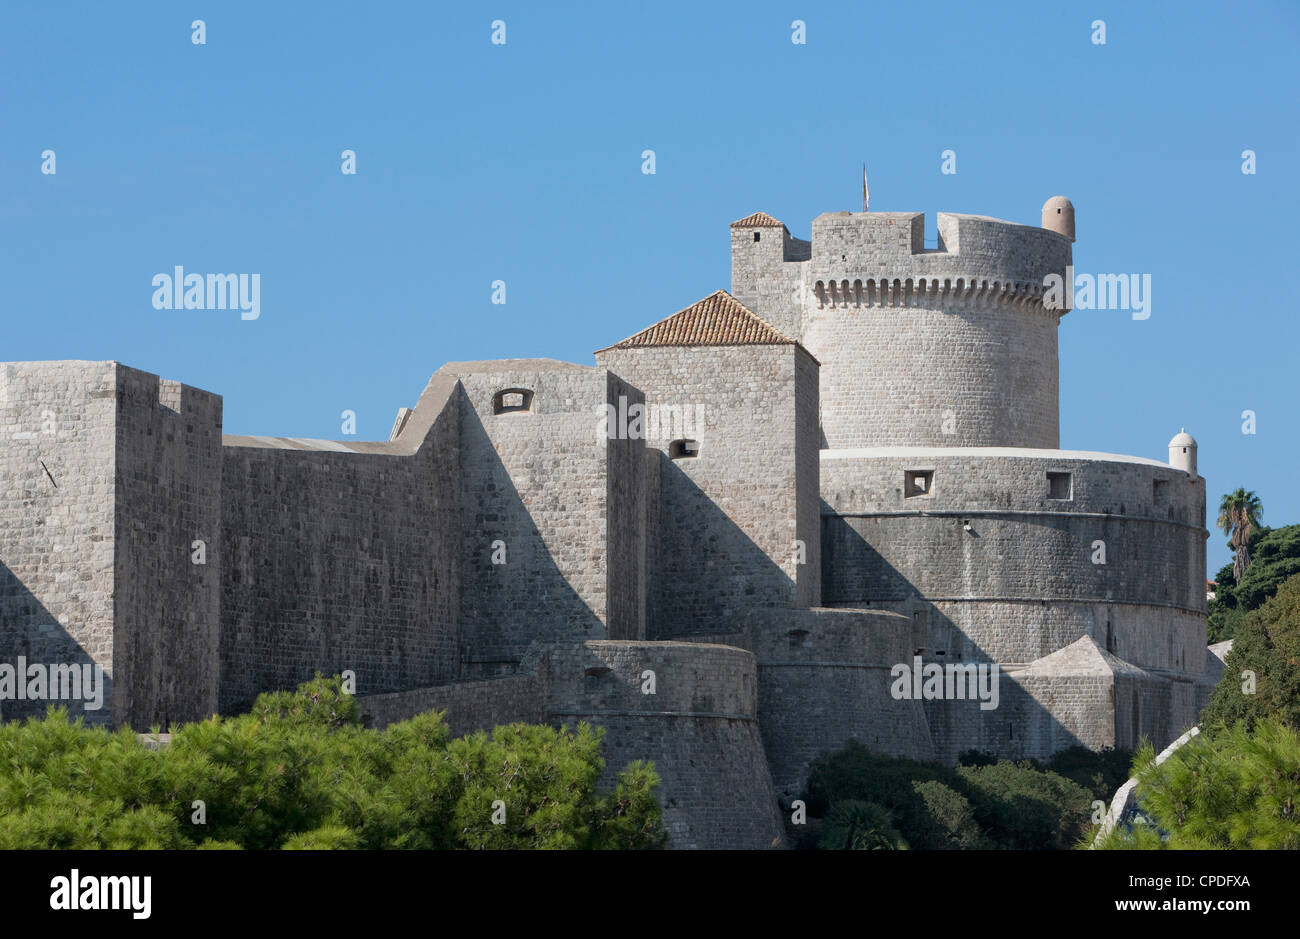 Minceta Fort and town walls, Old Town, UNESCO World Heritage Site, Dubrovnik, Croatia, Europe - Stock Image